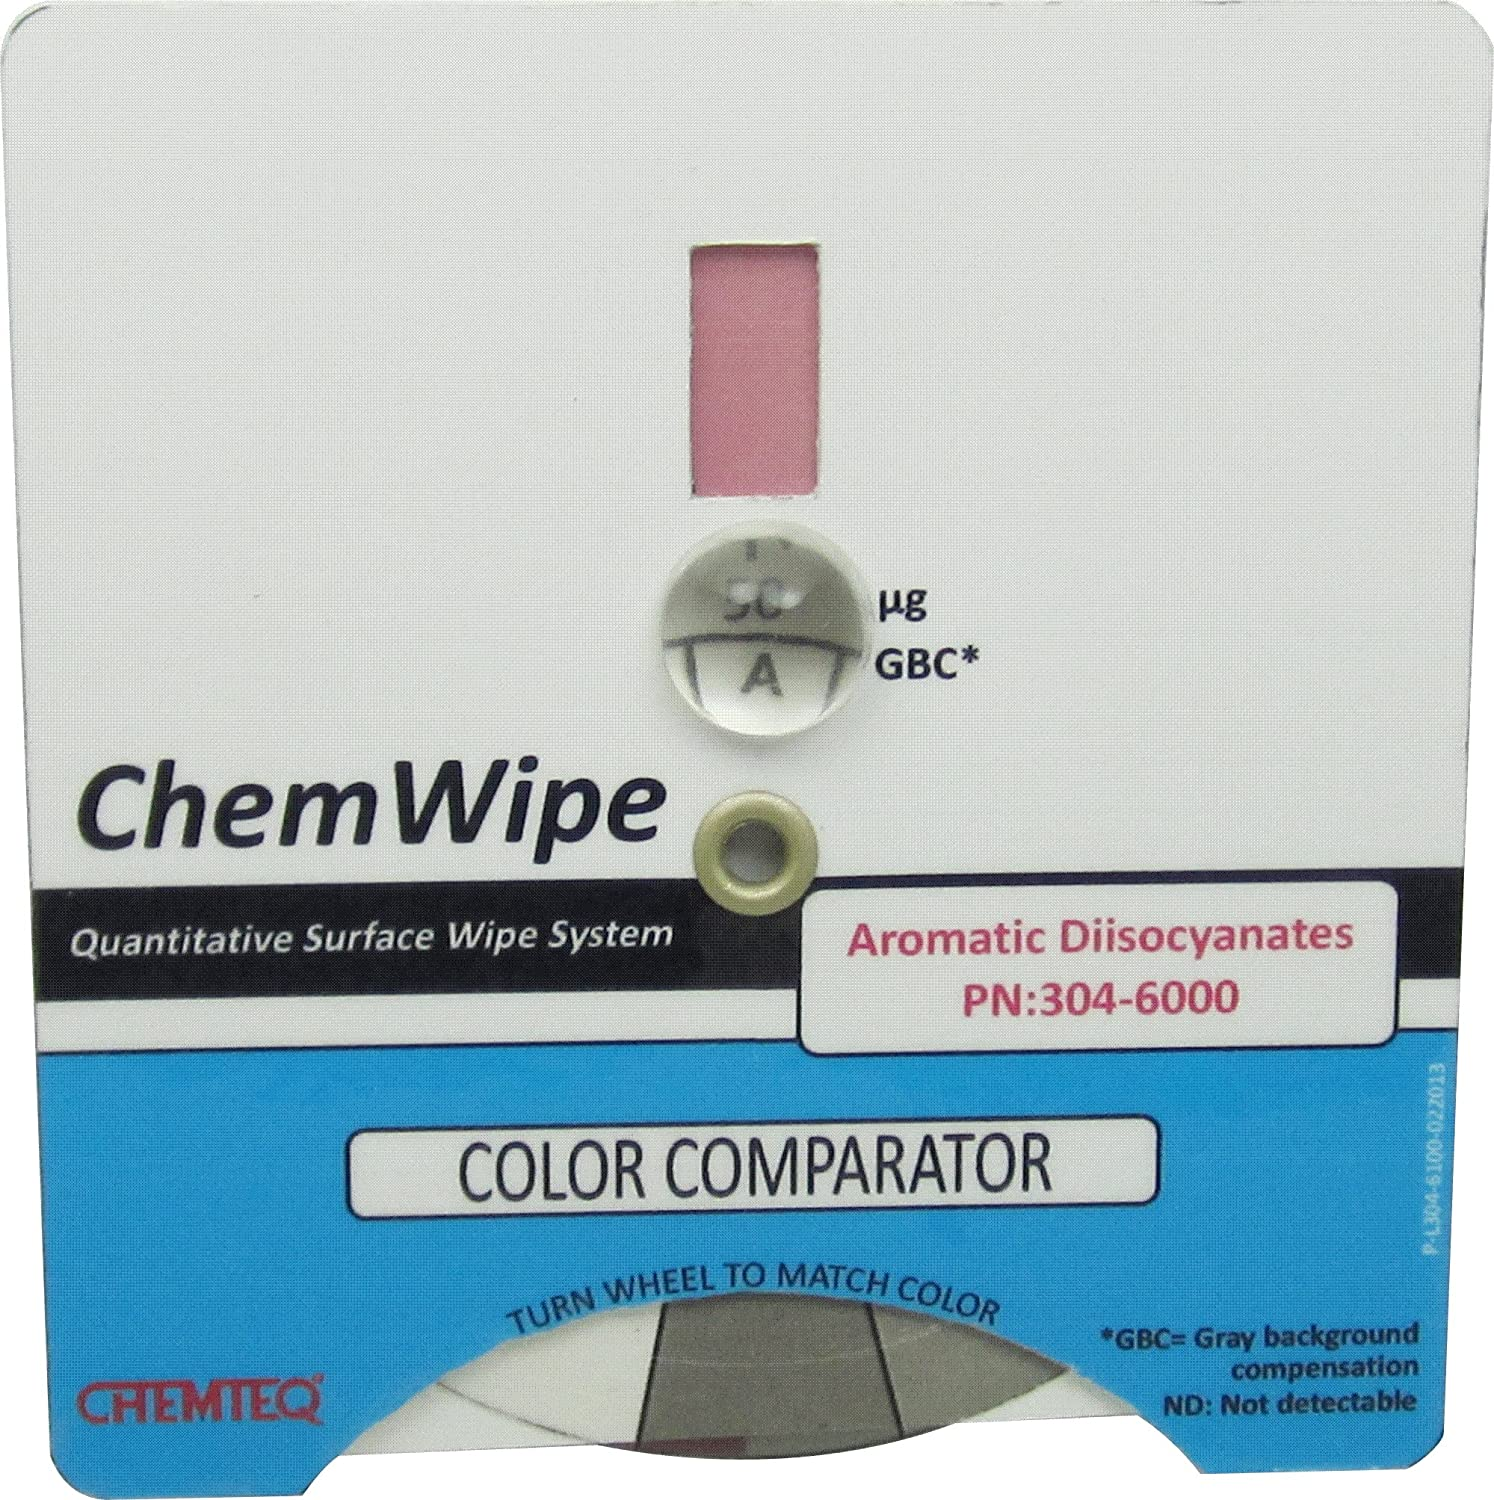 Aromatic Diisocyanates Color Comparator Chemteq 304-6000